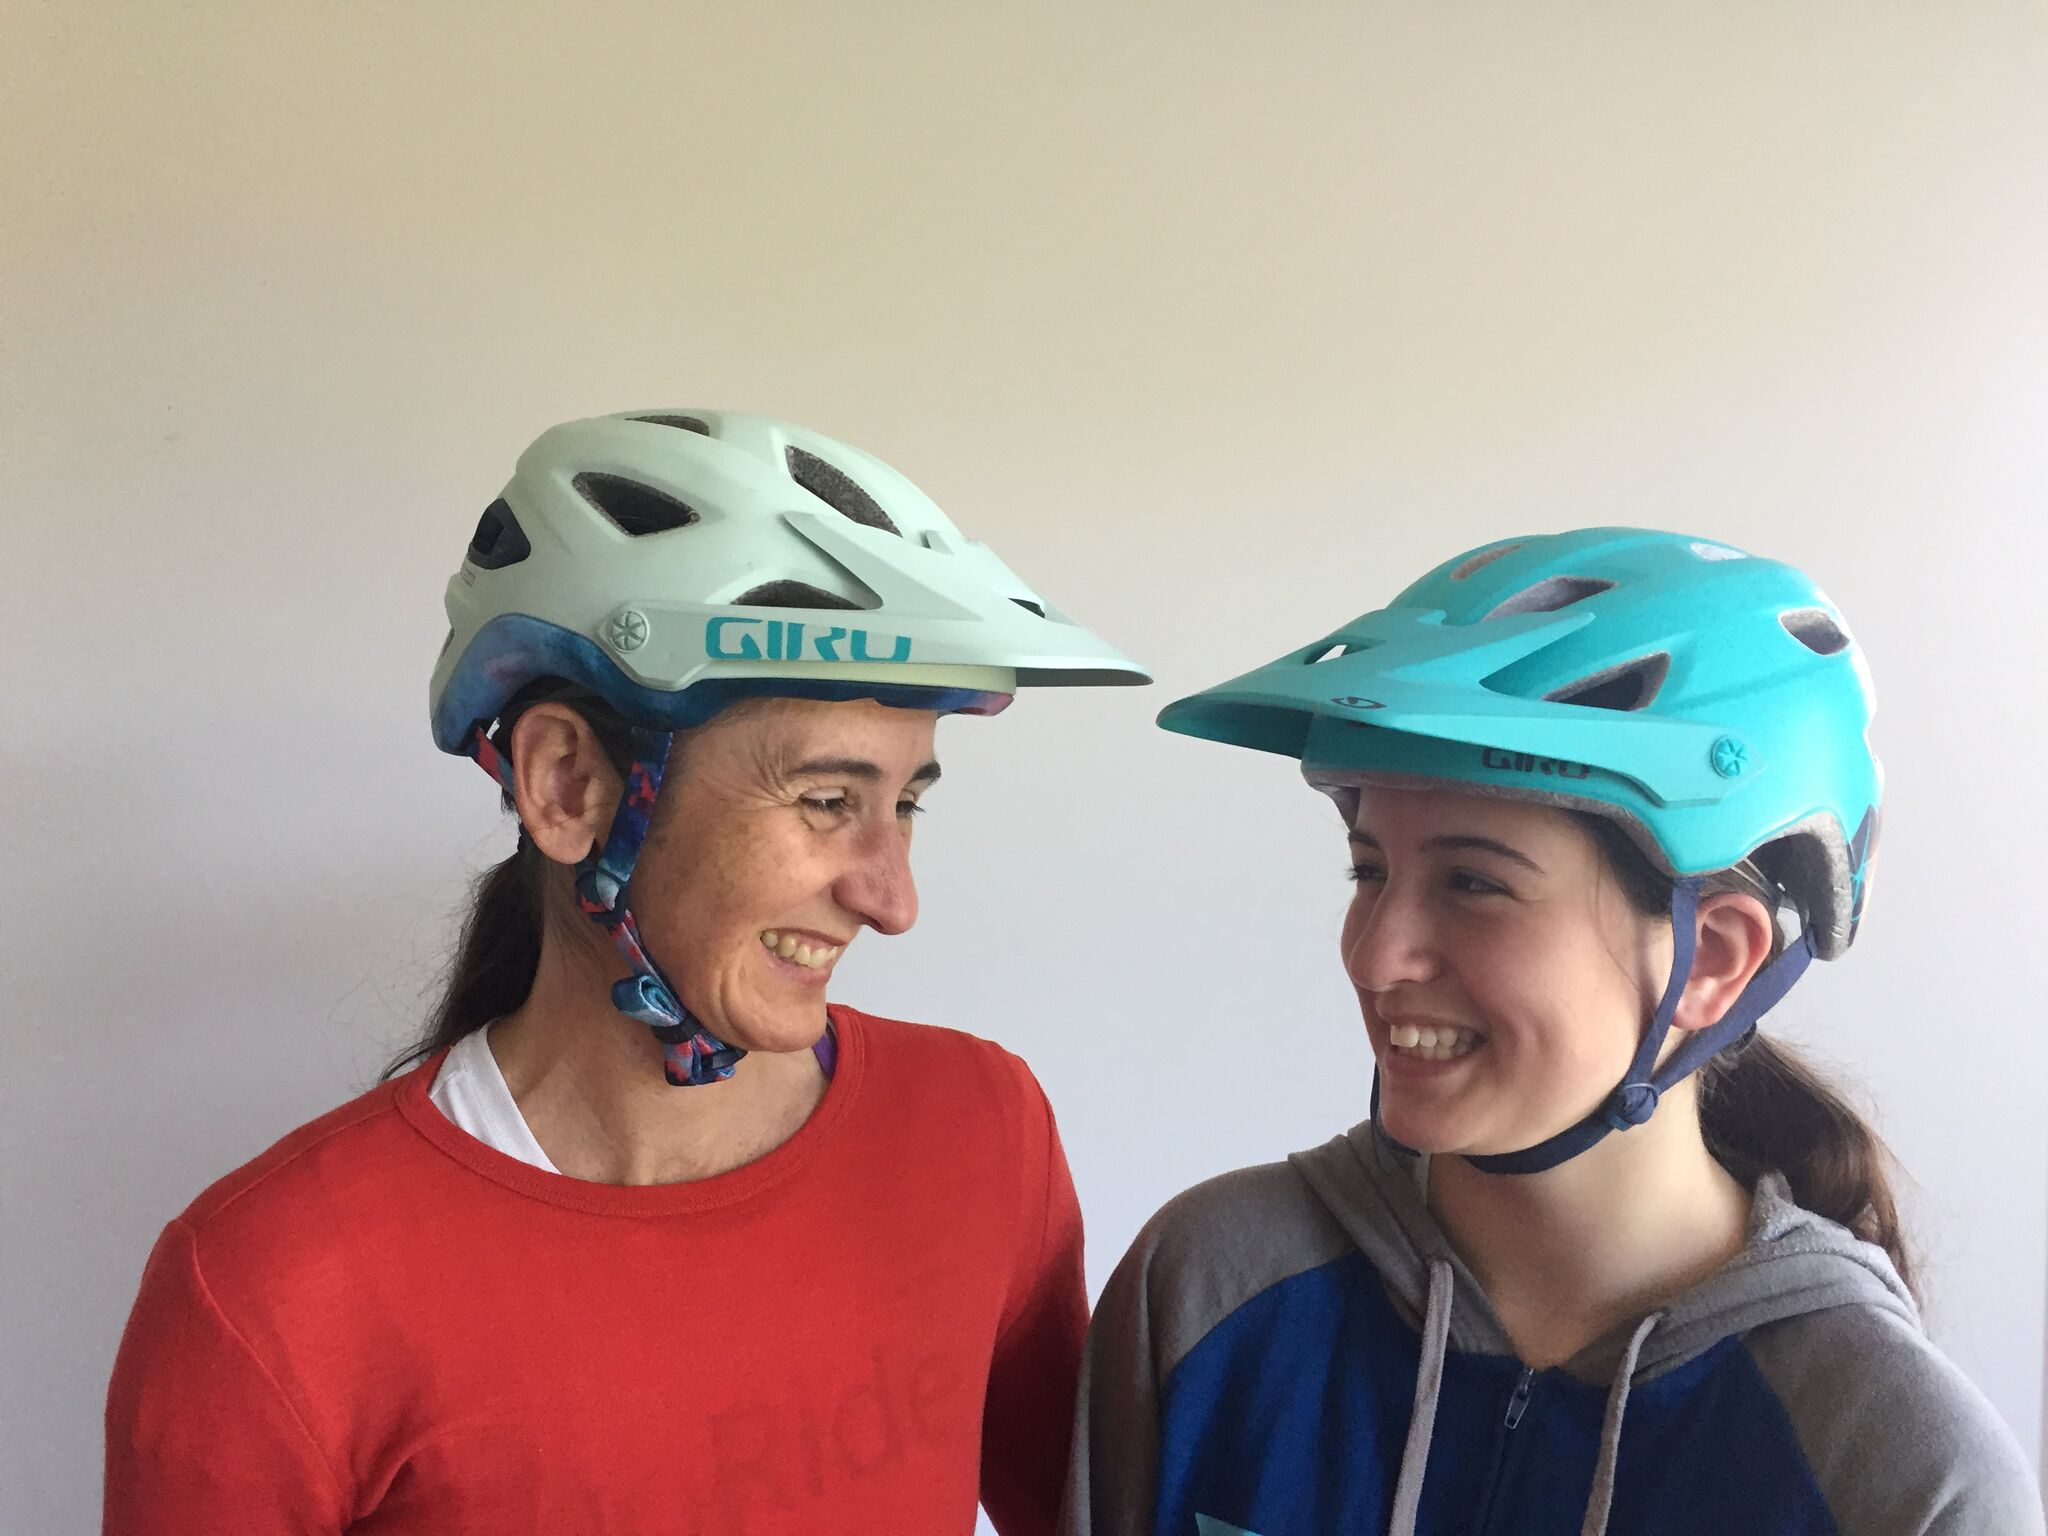 Bike Helmets for Mountain Biking – What are the options?